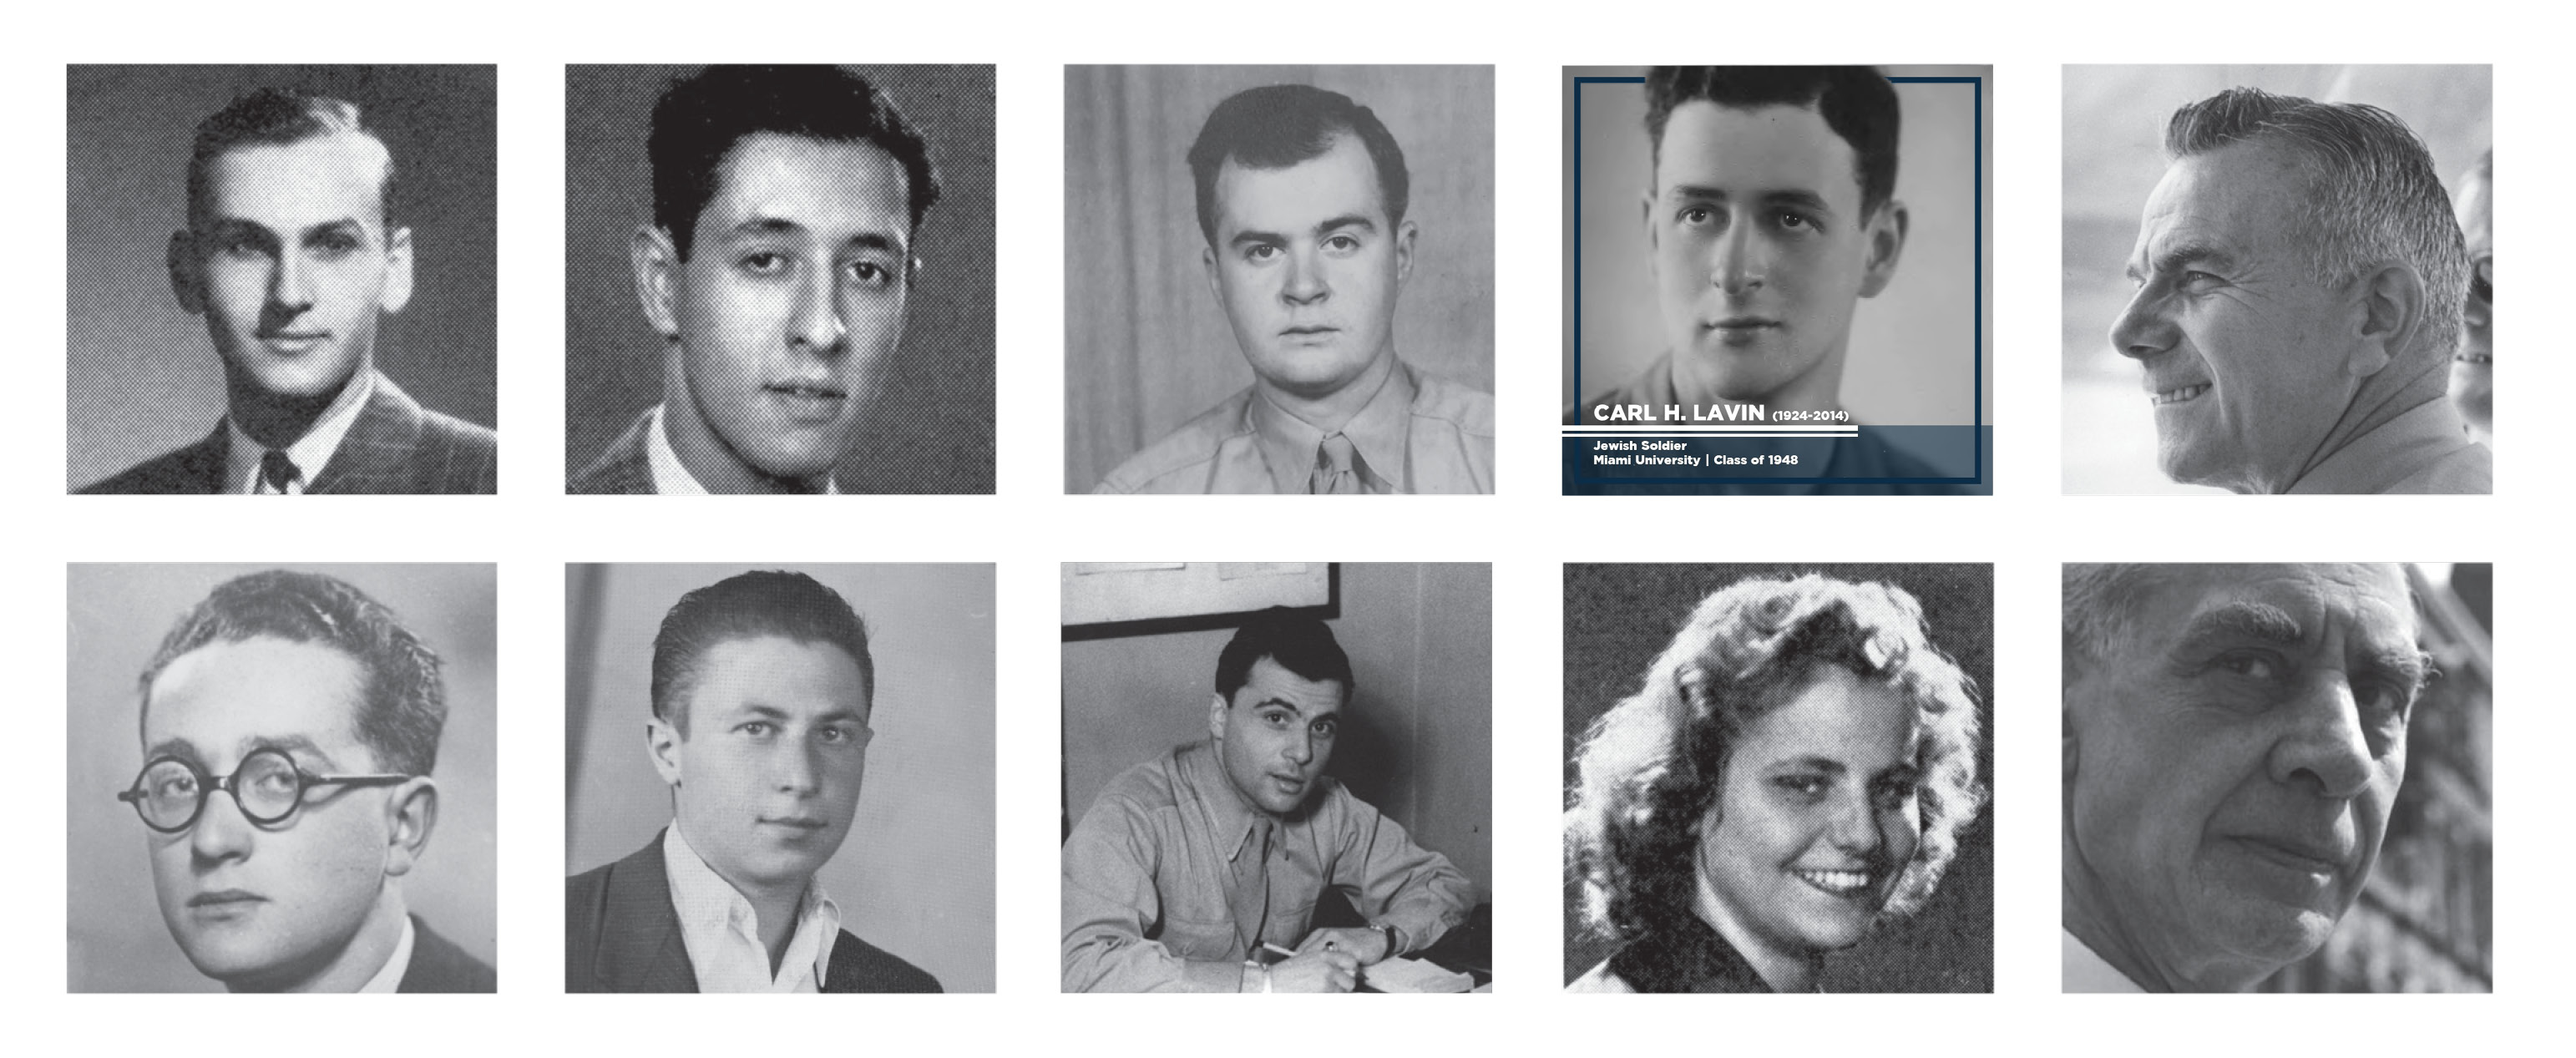 Nine black and white portraits of the alumni and faculty featured in the exhibition Bearing Witness. Carl H. Lavin's image is outlined in blue with the text -  Carl H. Lavin (1924—2014) Jewish Soldier. Miami University, Class of 1948.